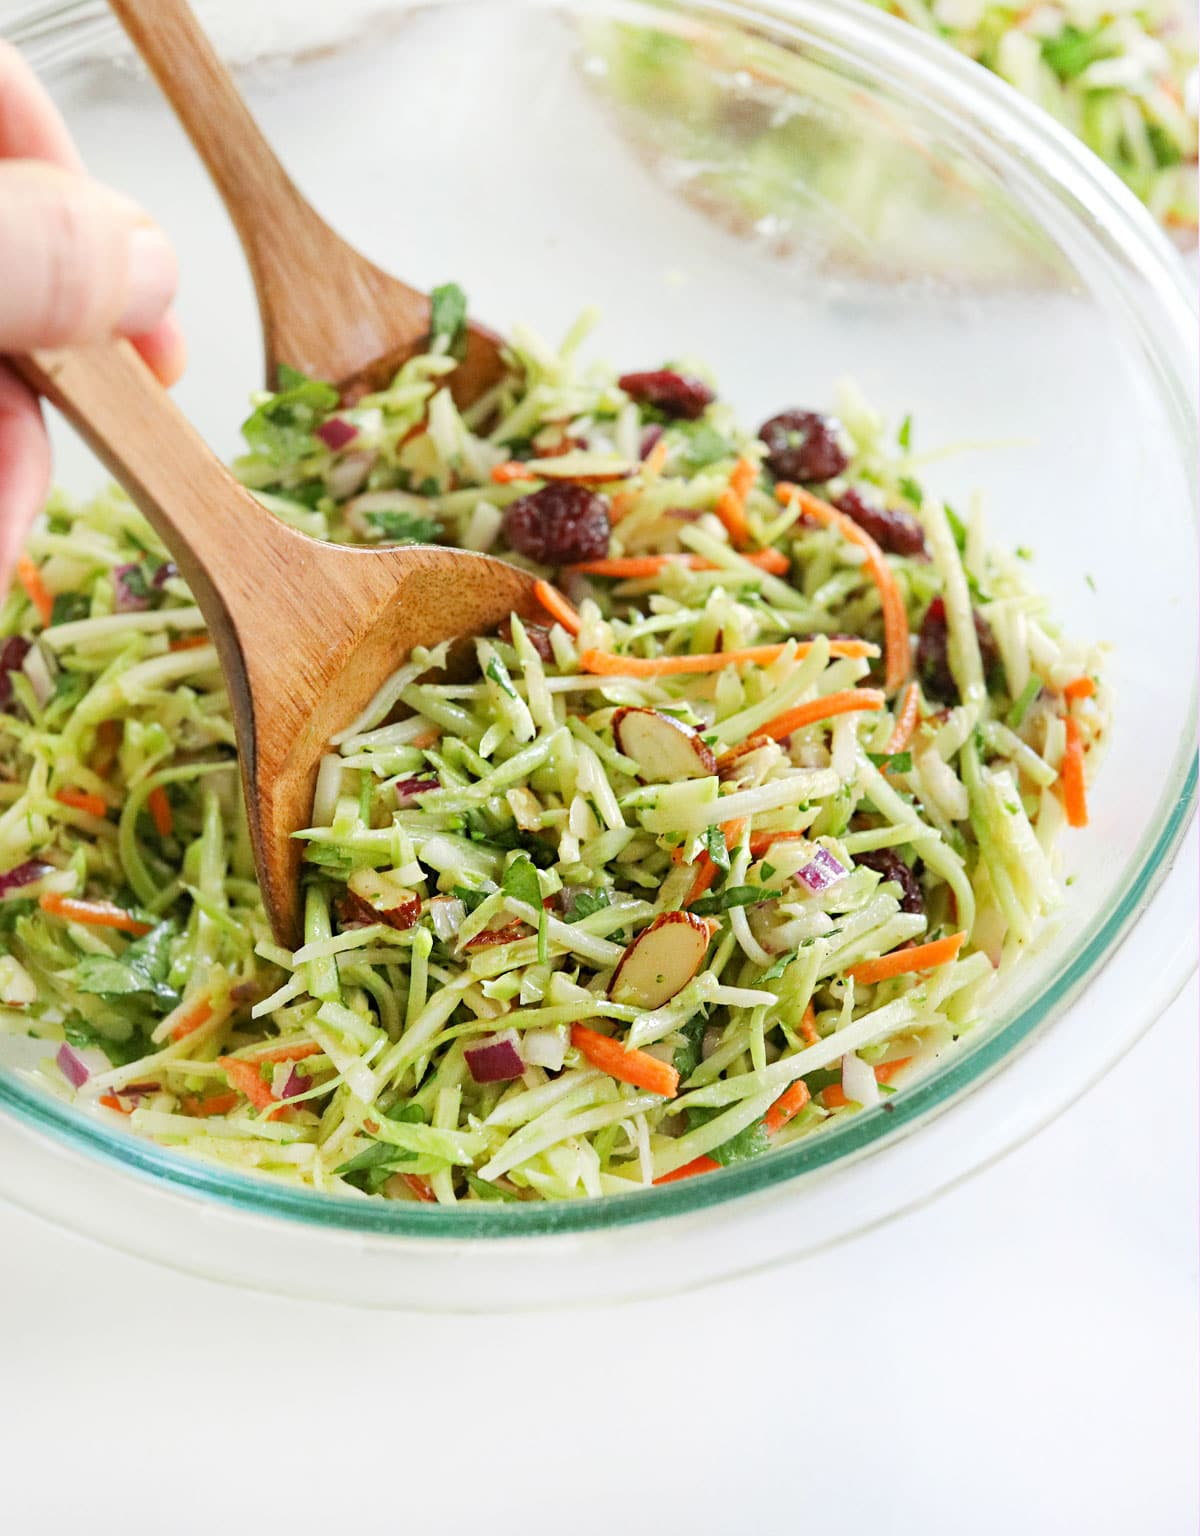 broccoli slaw tossed with wooden tongs